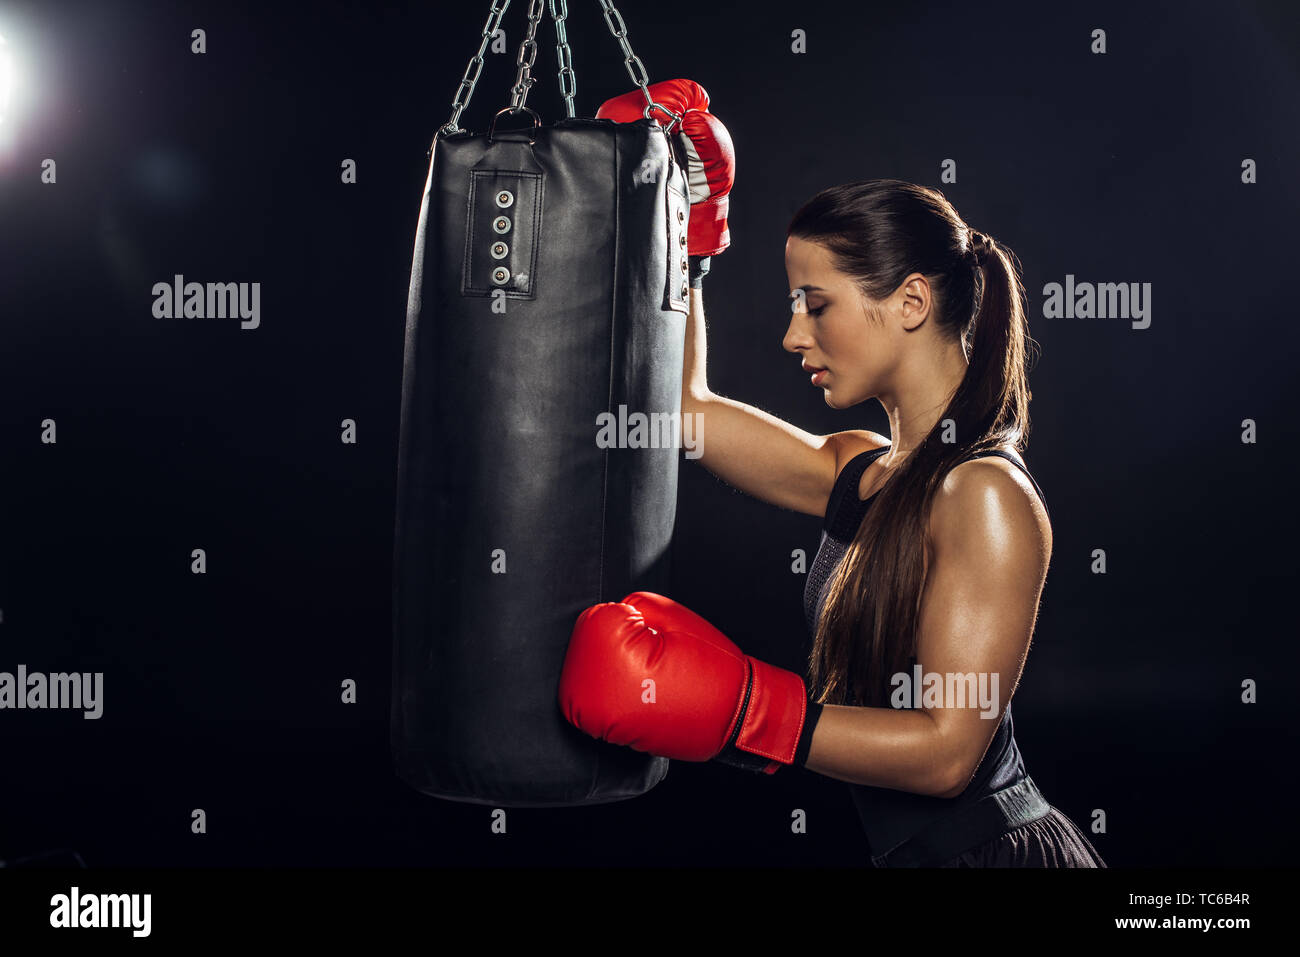 Side view of female boxer in red boxing gloves training with punching bag - Stock Image